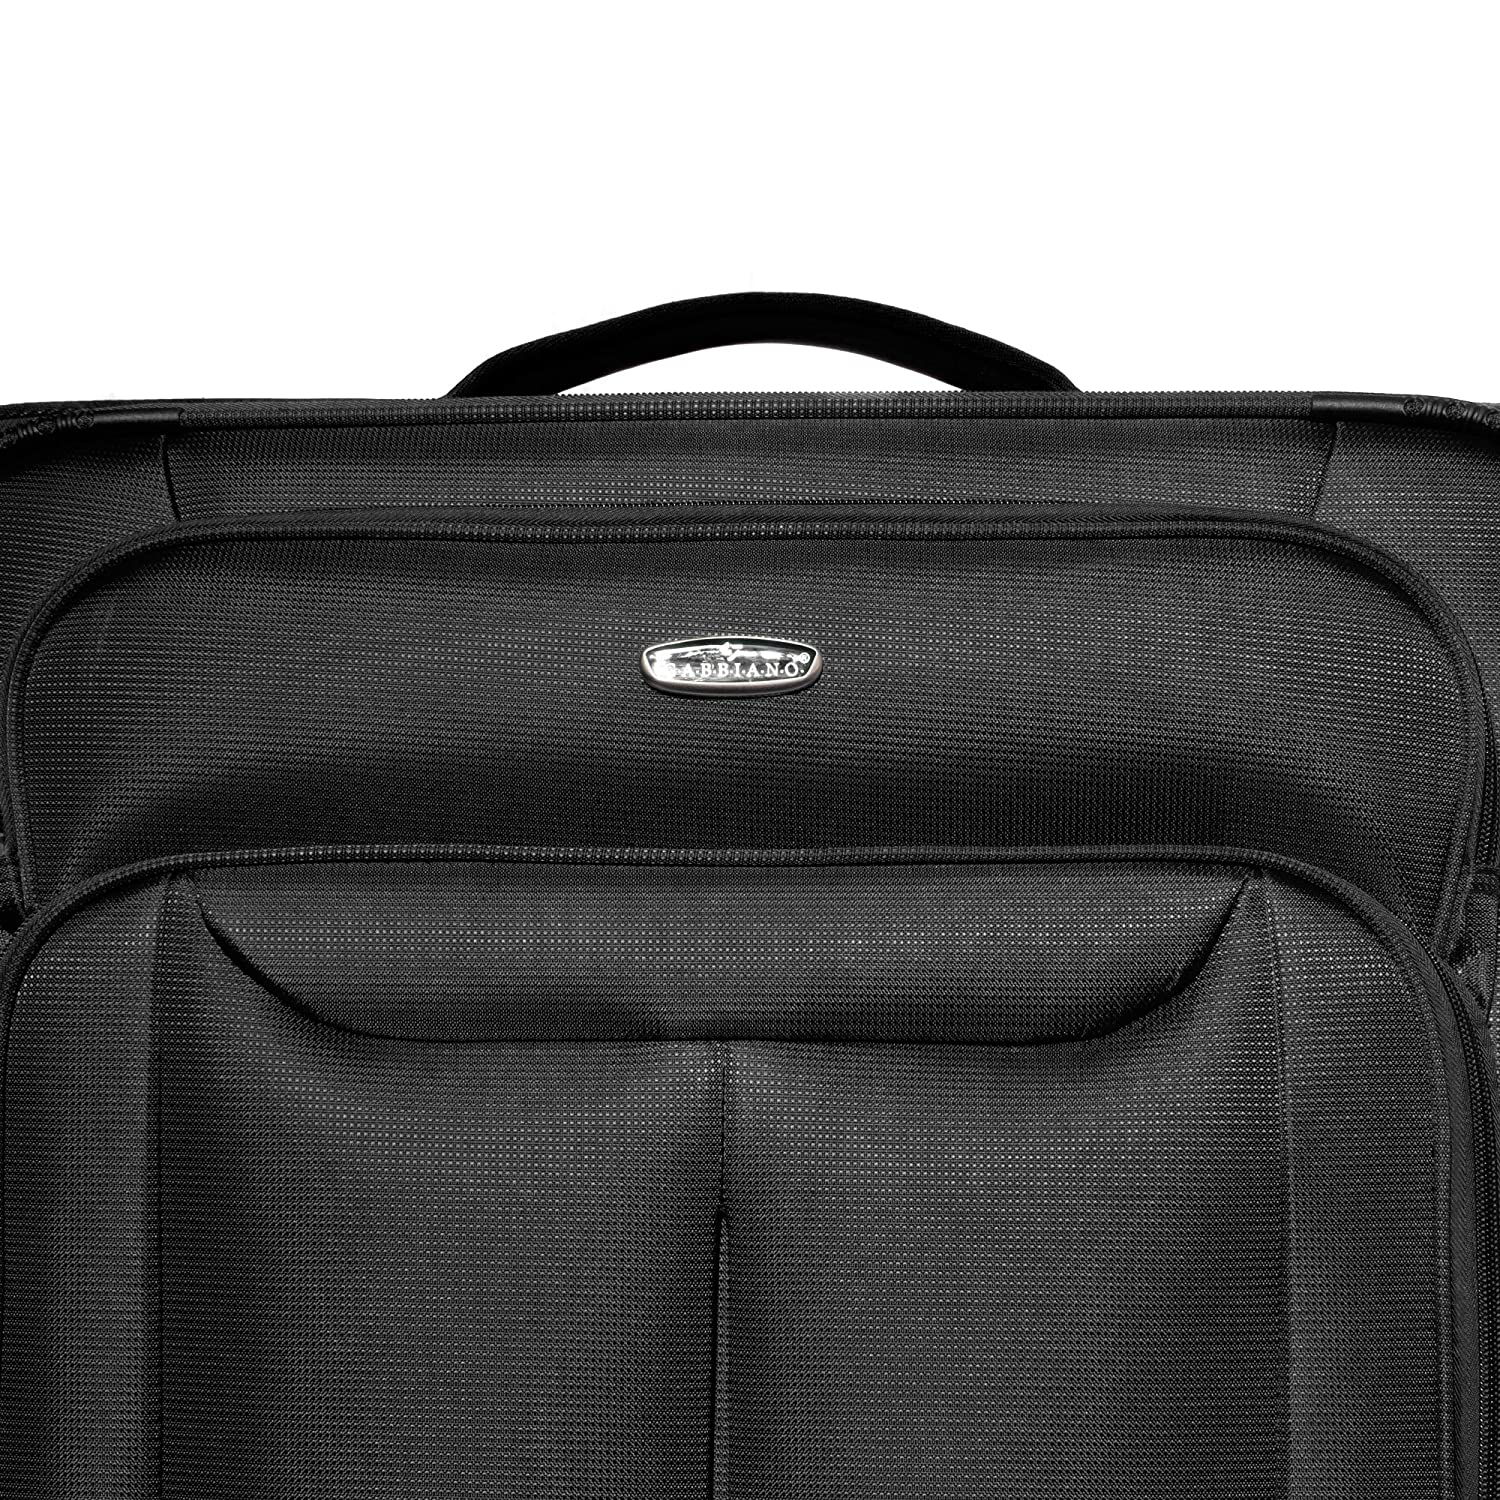 Gabbiano Bellagio Collection 3 Piece Softside Spinner Luggage Set Navy Blue